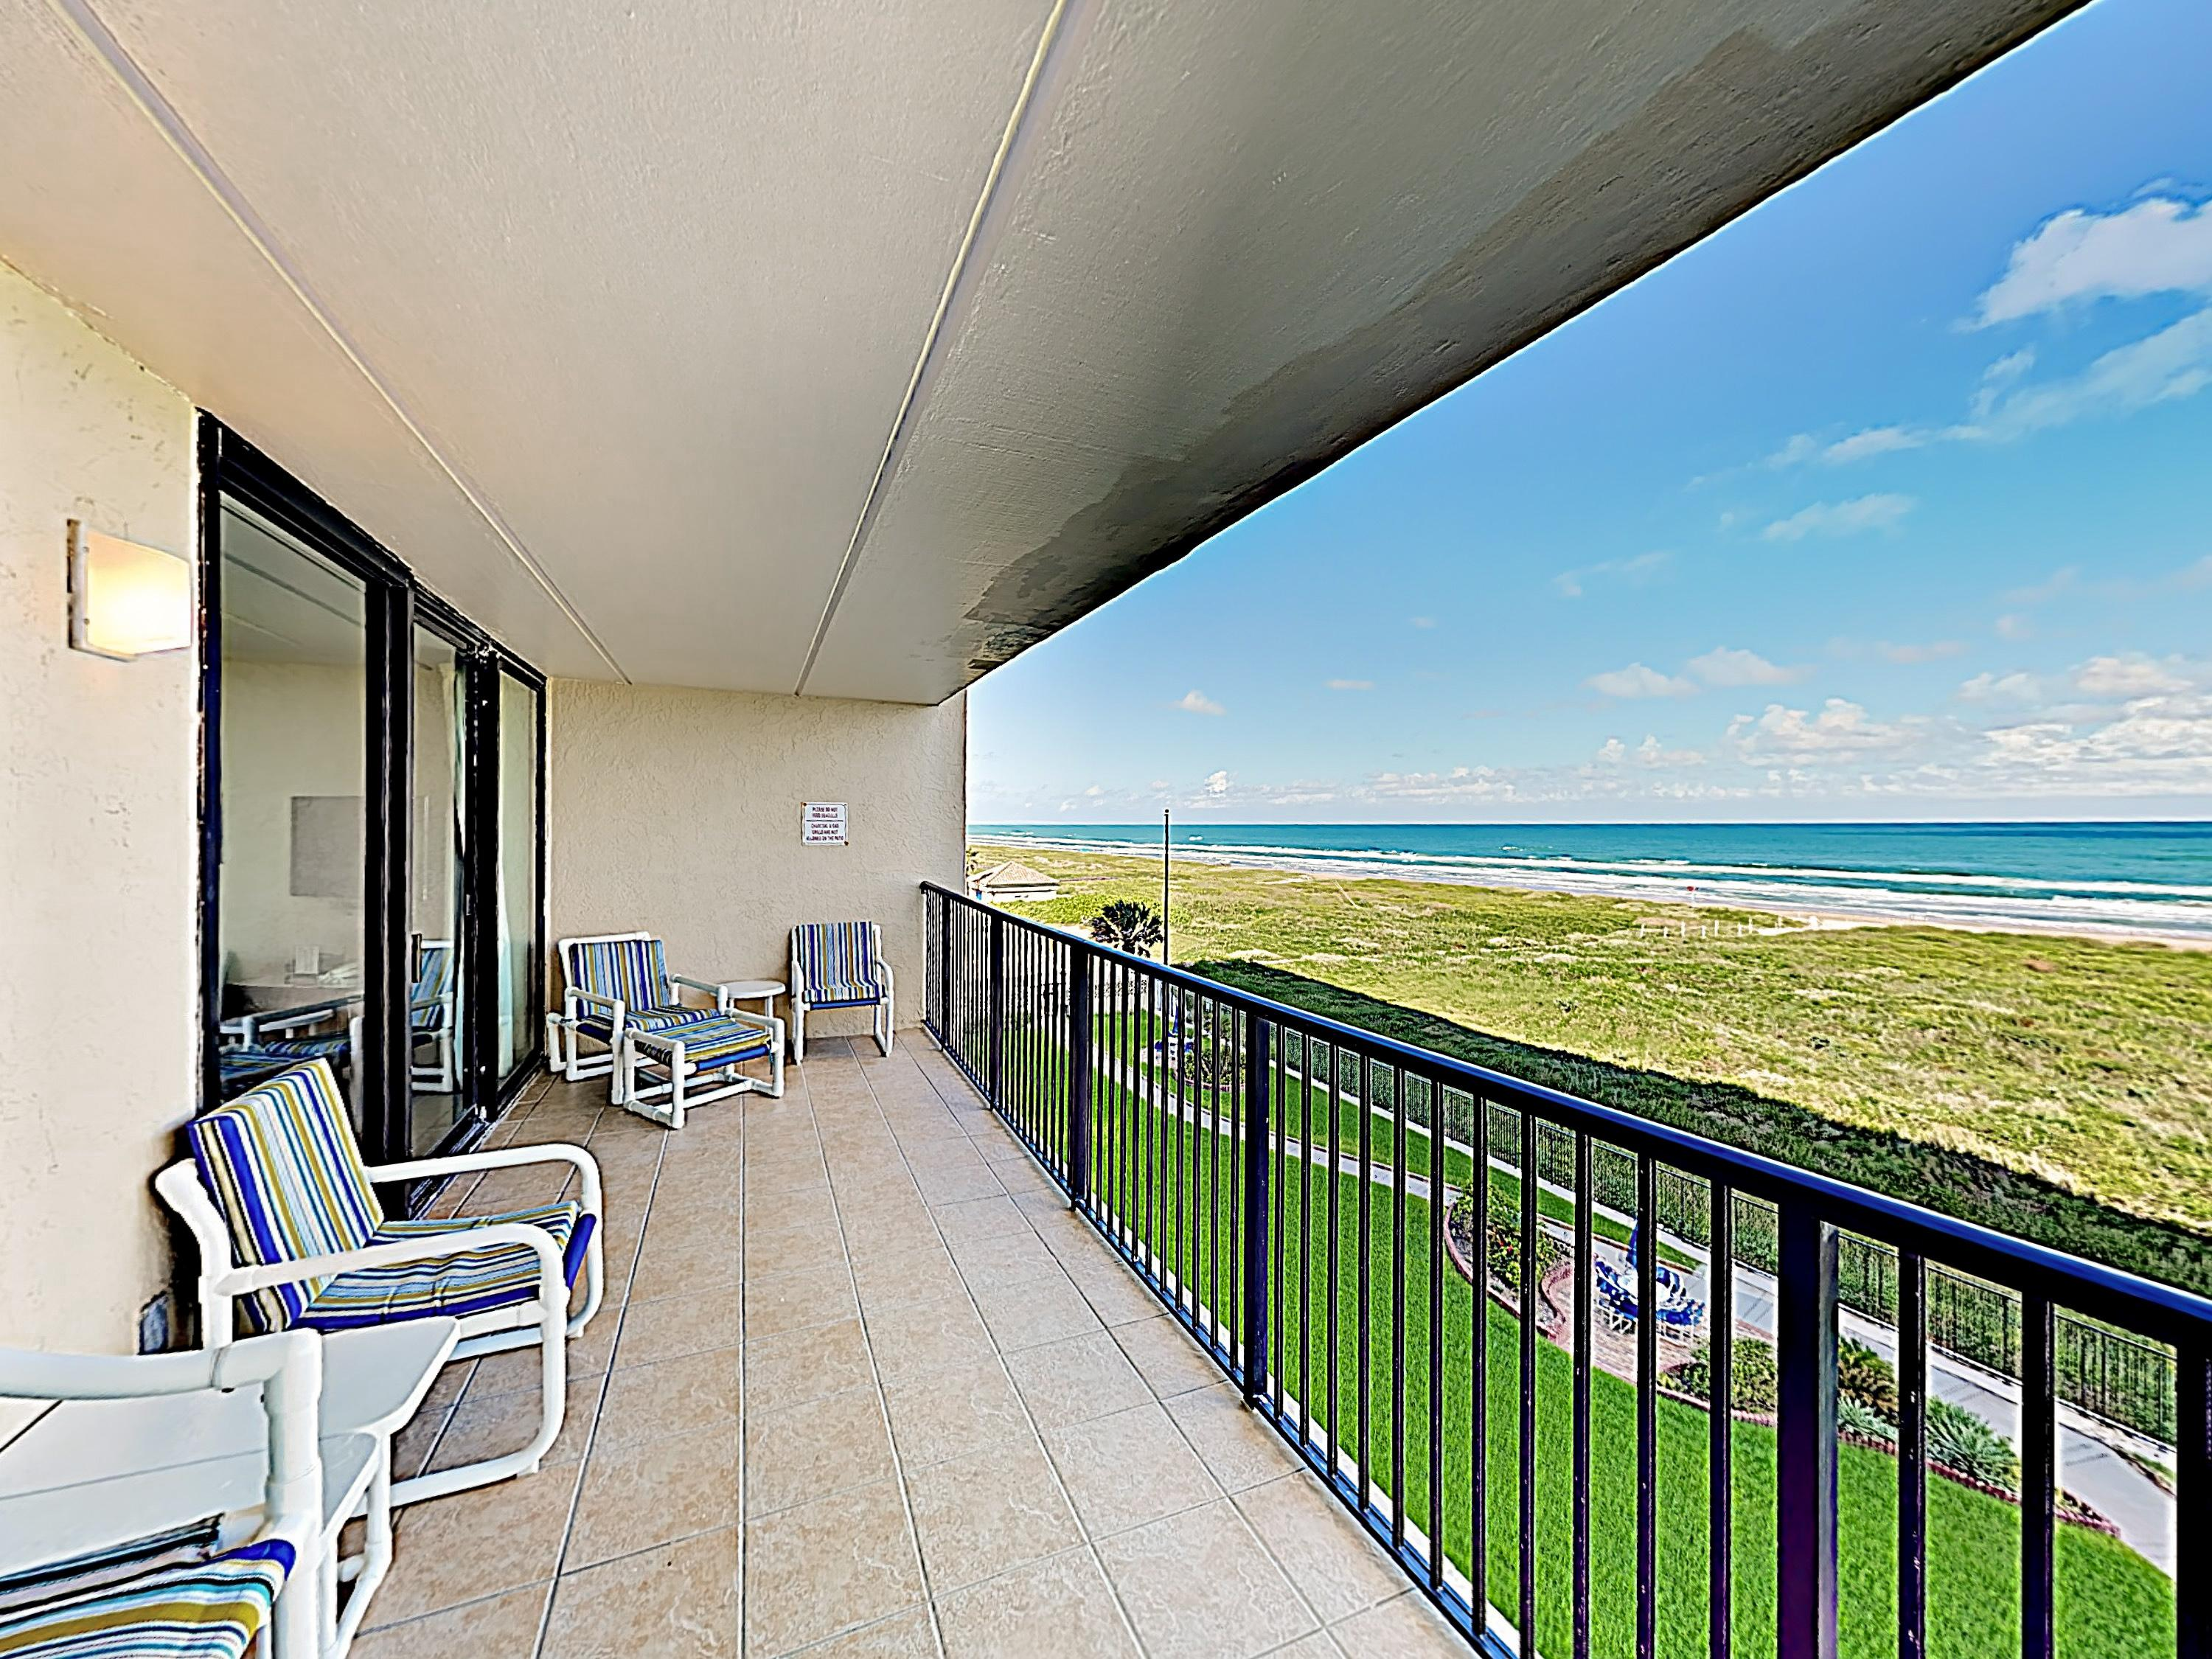 Welcome to Suntide III! This condo is professionally managed by TurnKey Vacation Rentals.